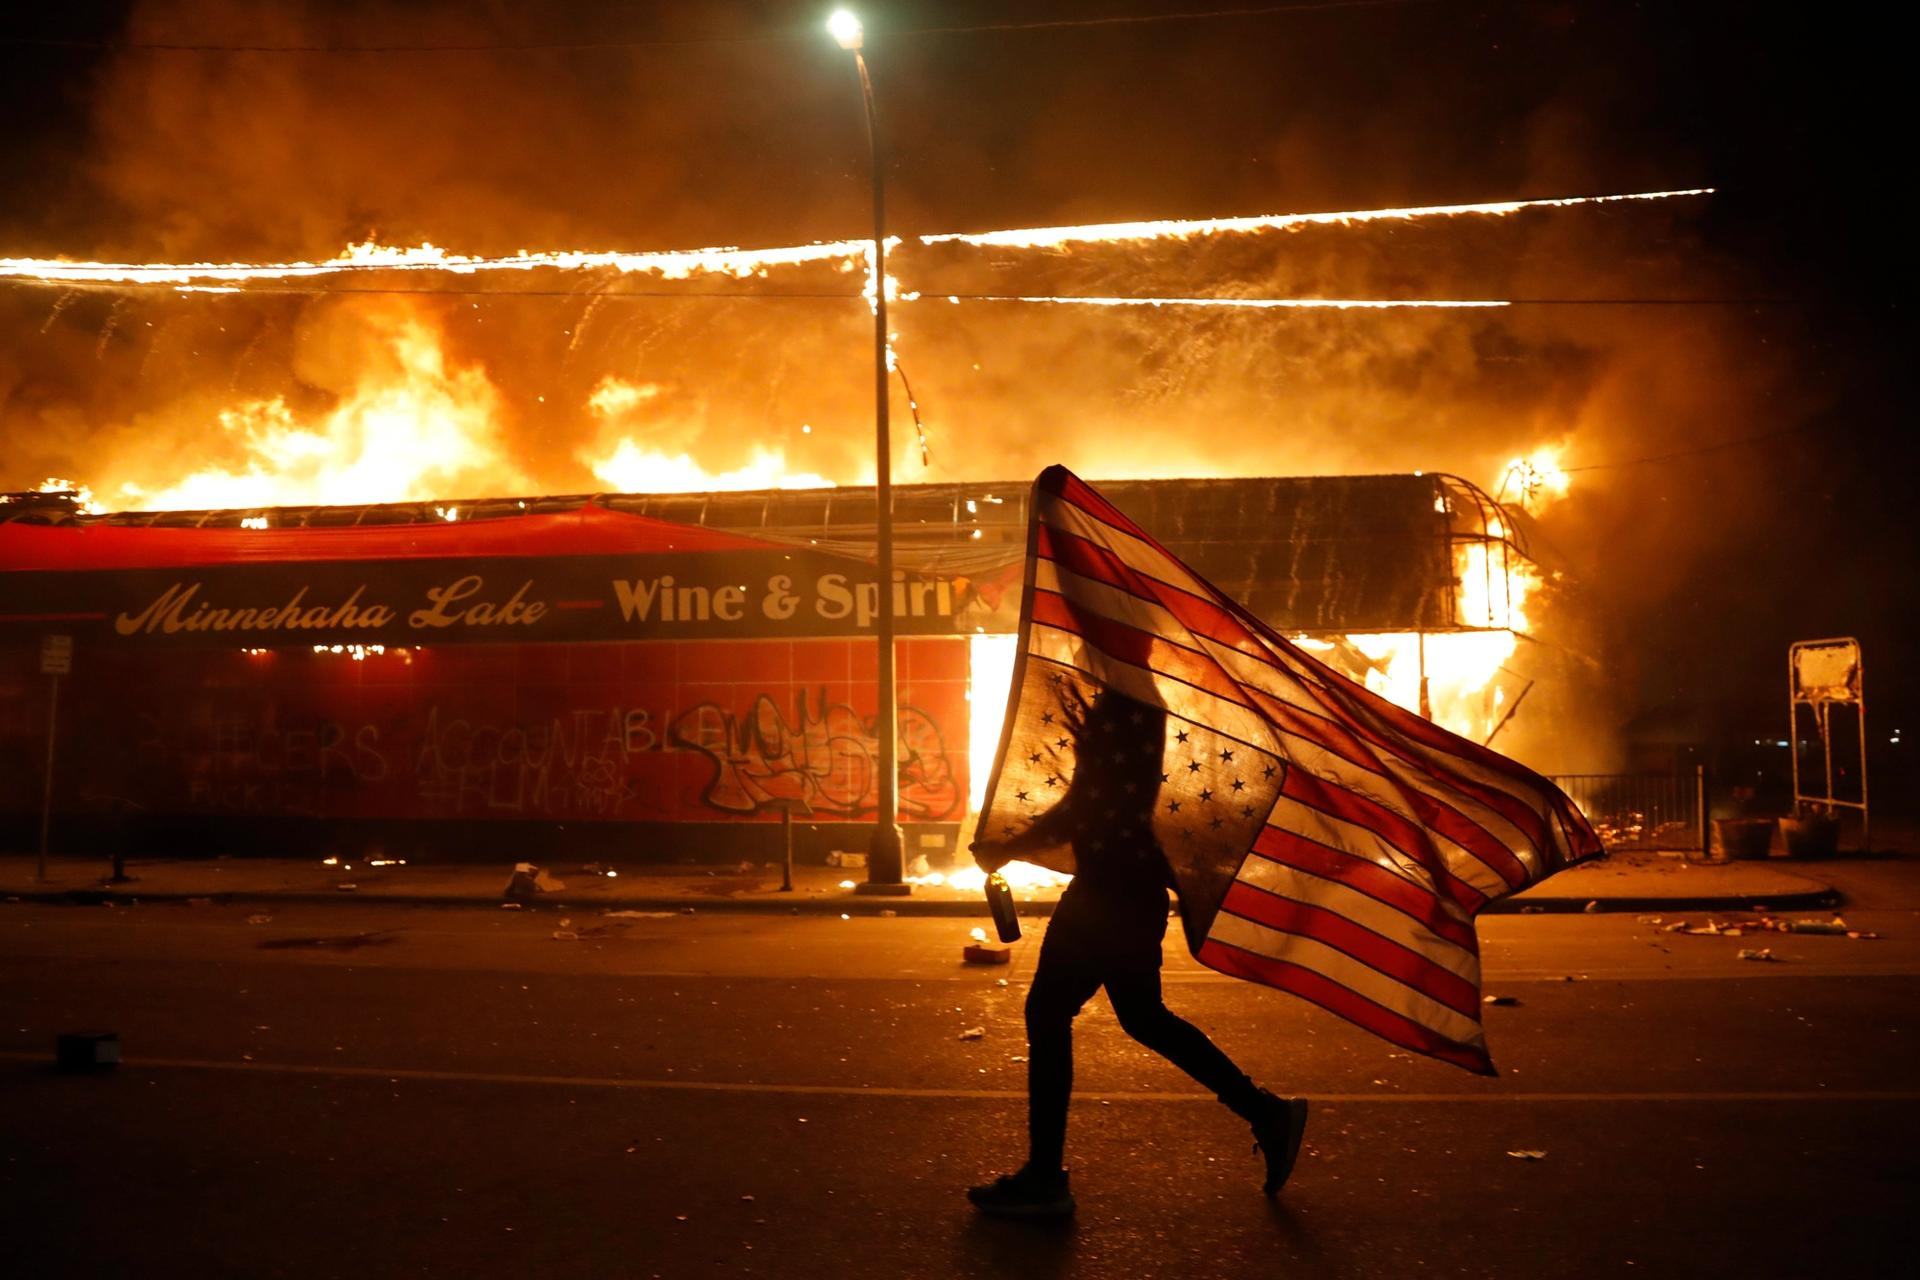 A protester carries a US flag upside down, a sign of distress, next to a burning building Thursday, 28 May 2020, in Minneapolis. Protests over the death of George Floyd, a black man who died in police custody Monday, broke out in Minneapolis for a third straight night AP Photo/Julio Cortez